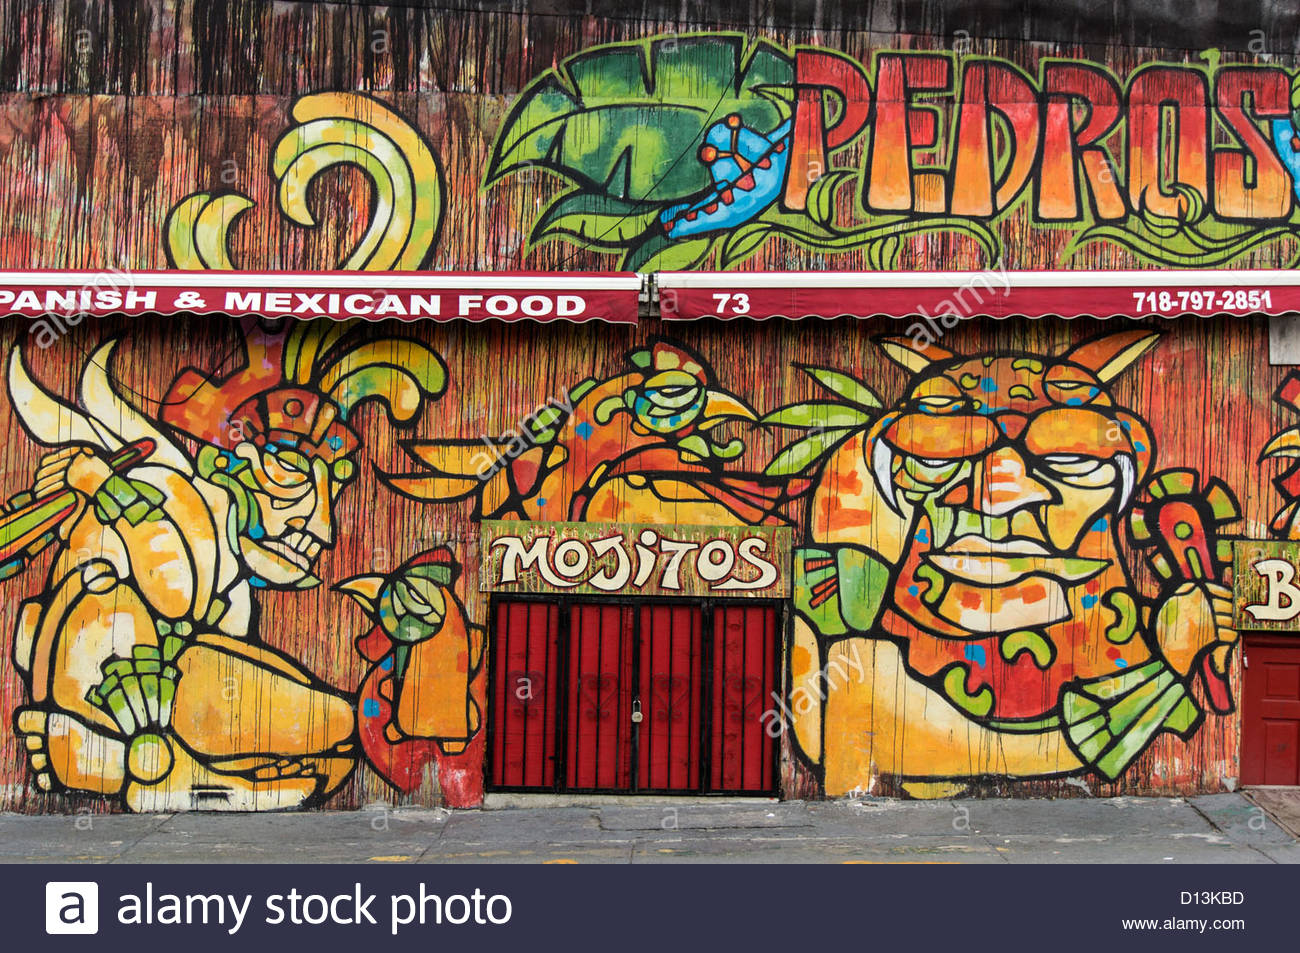 Dumbo, Wall Painting, Mexican Food, Pedros, NYC Stock ...